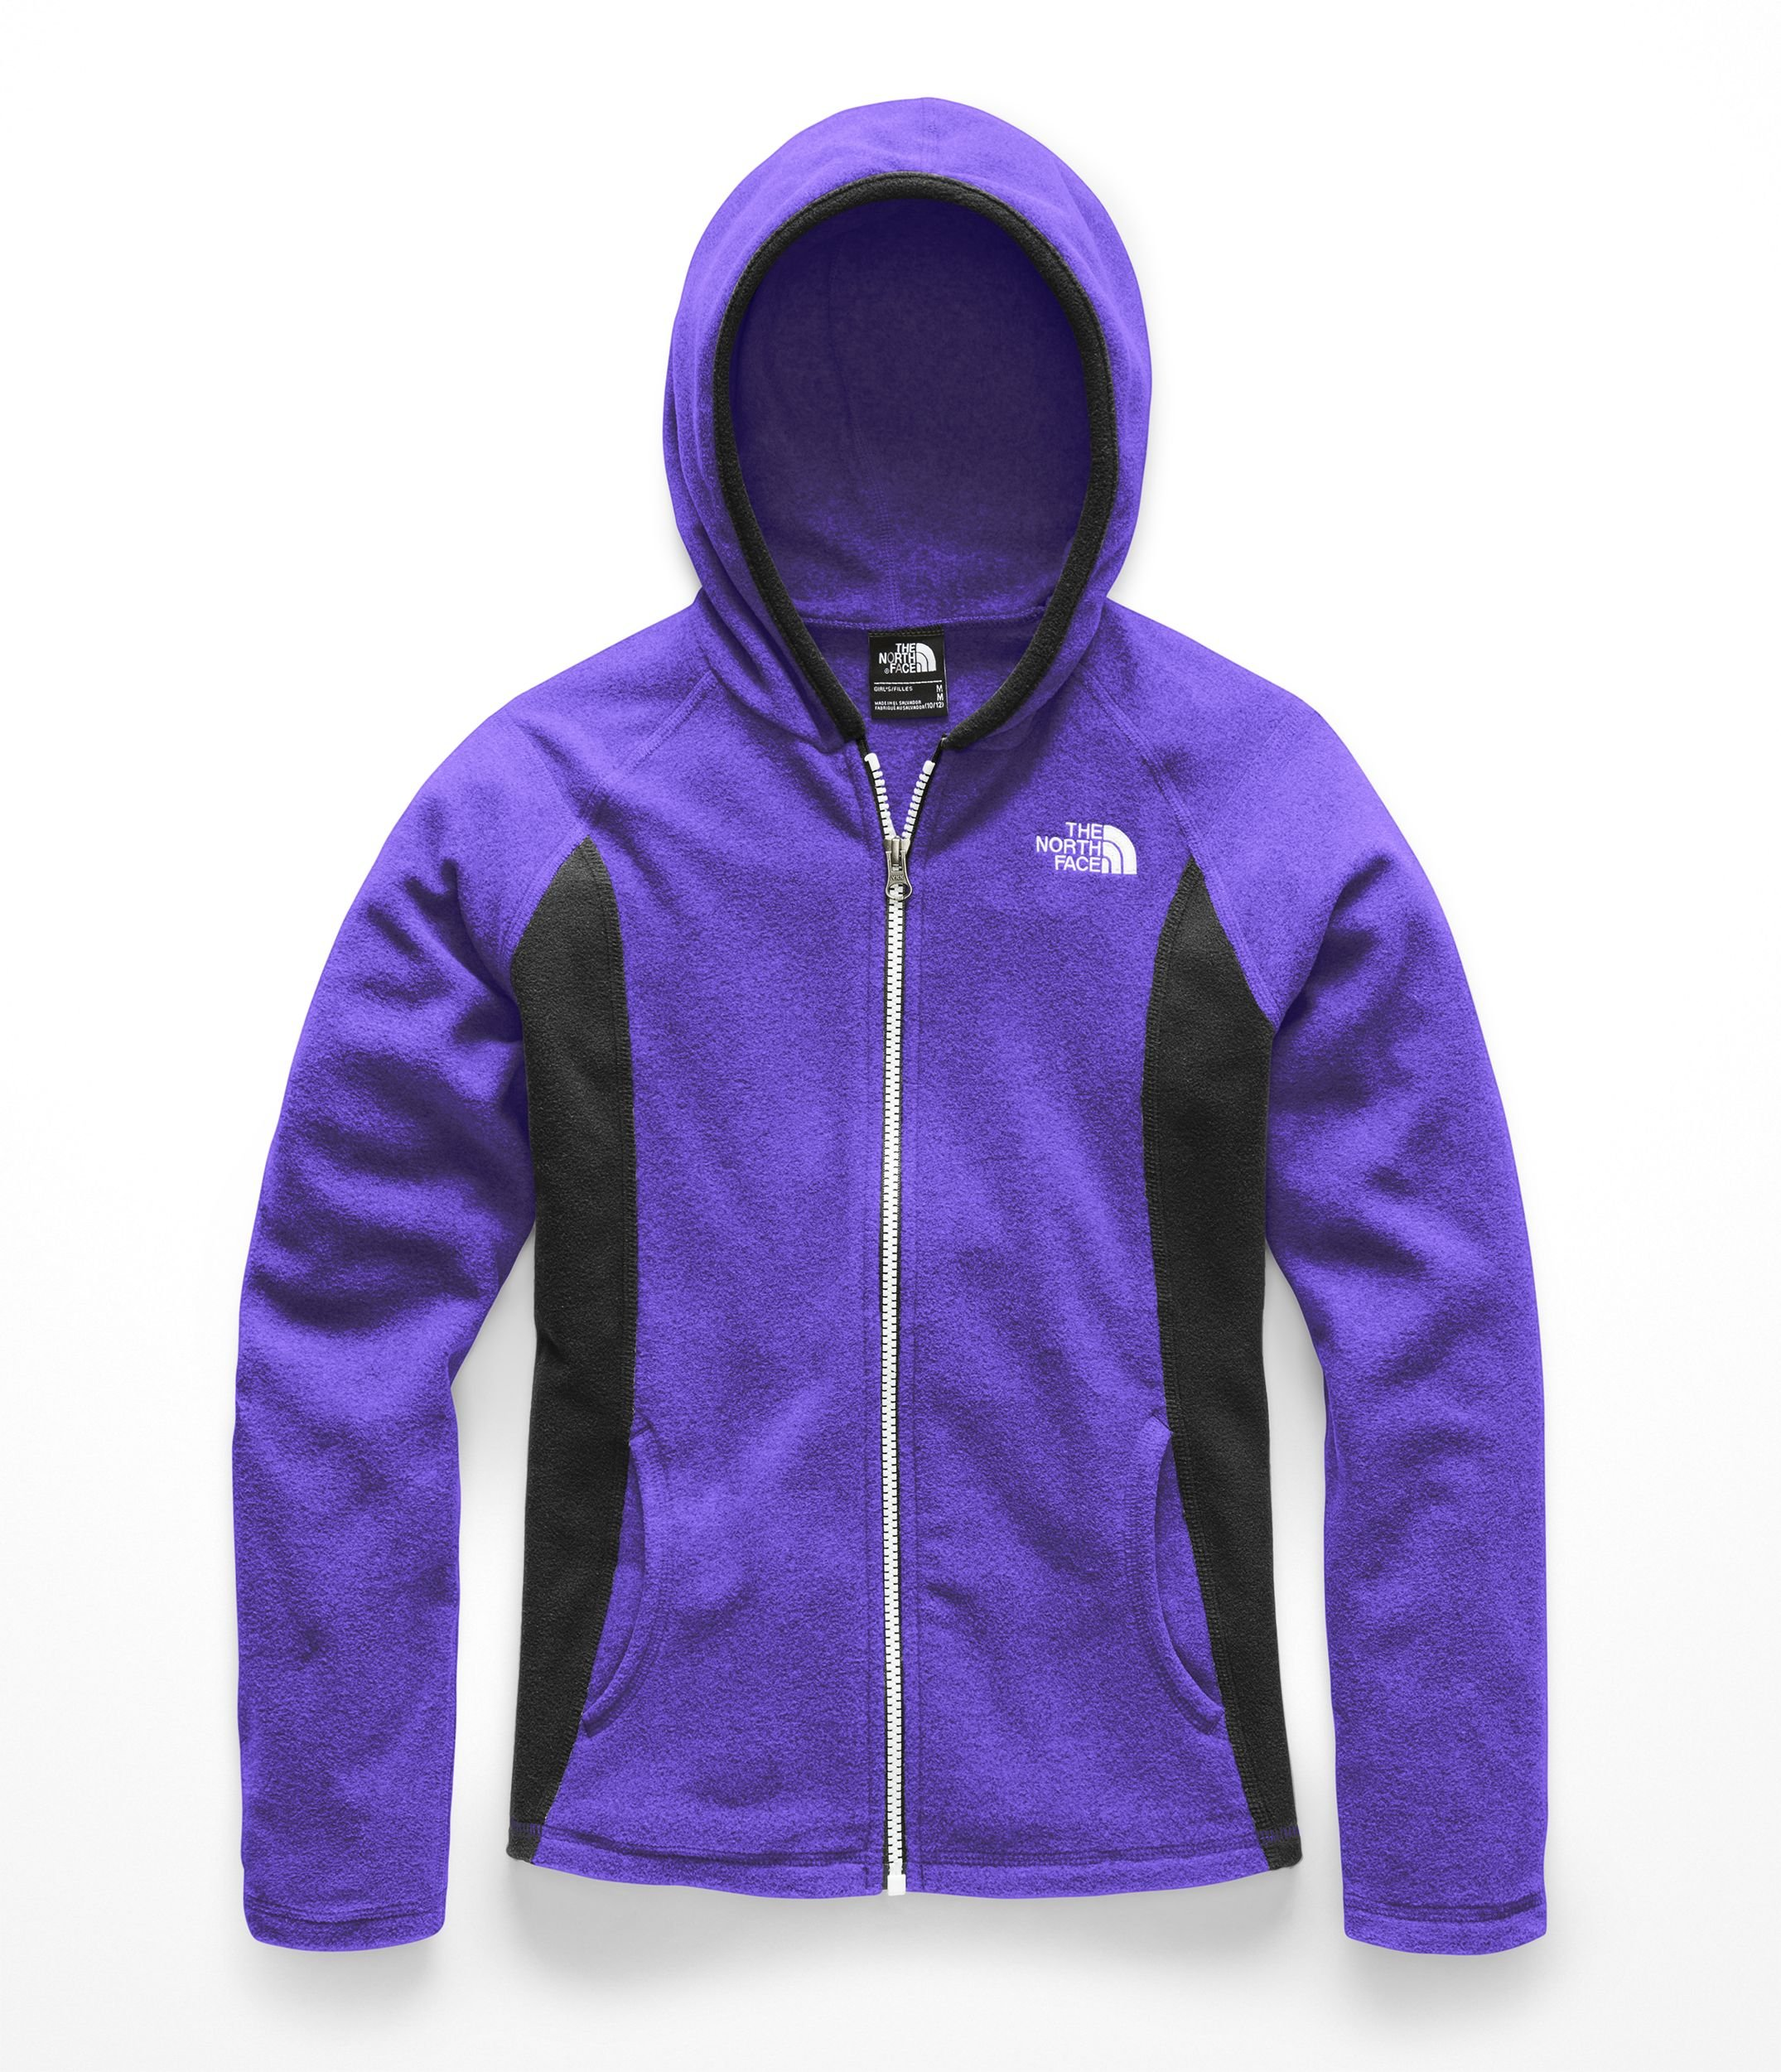 The North Face Girls Glacier Full Zip Hoodie - Deep Blue - S